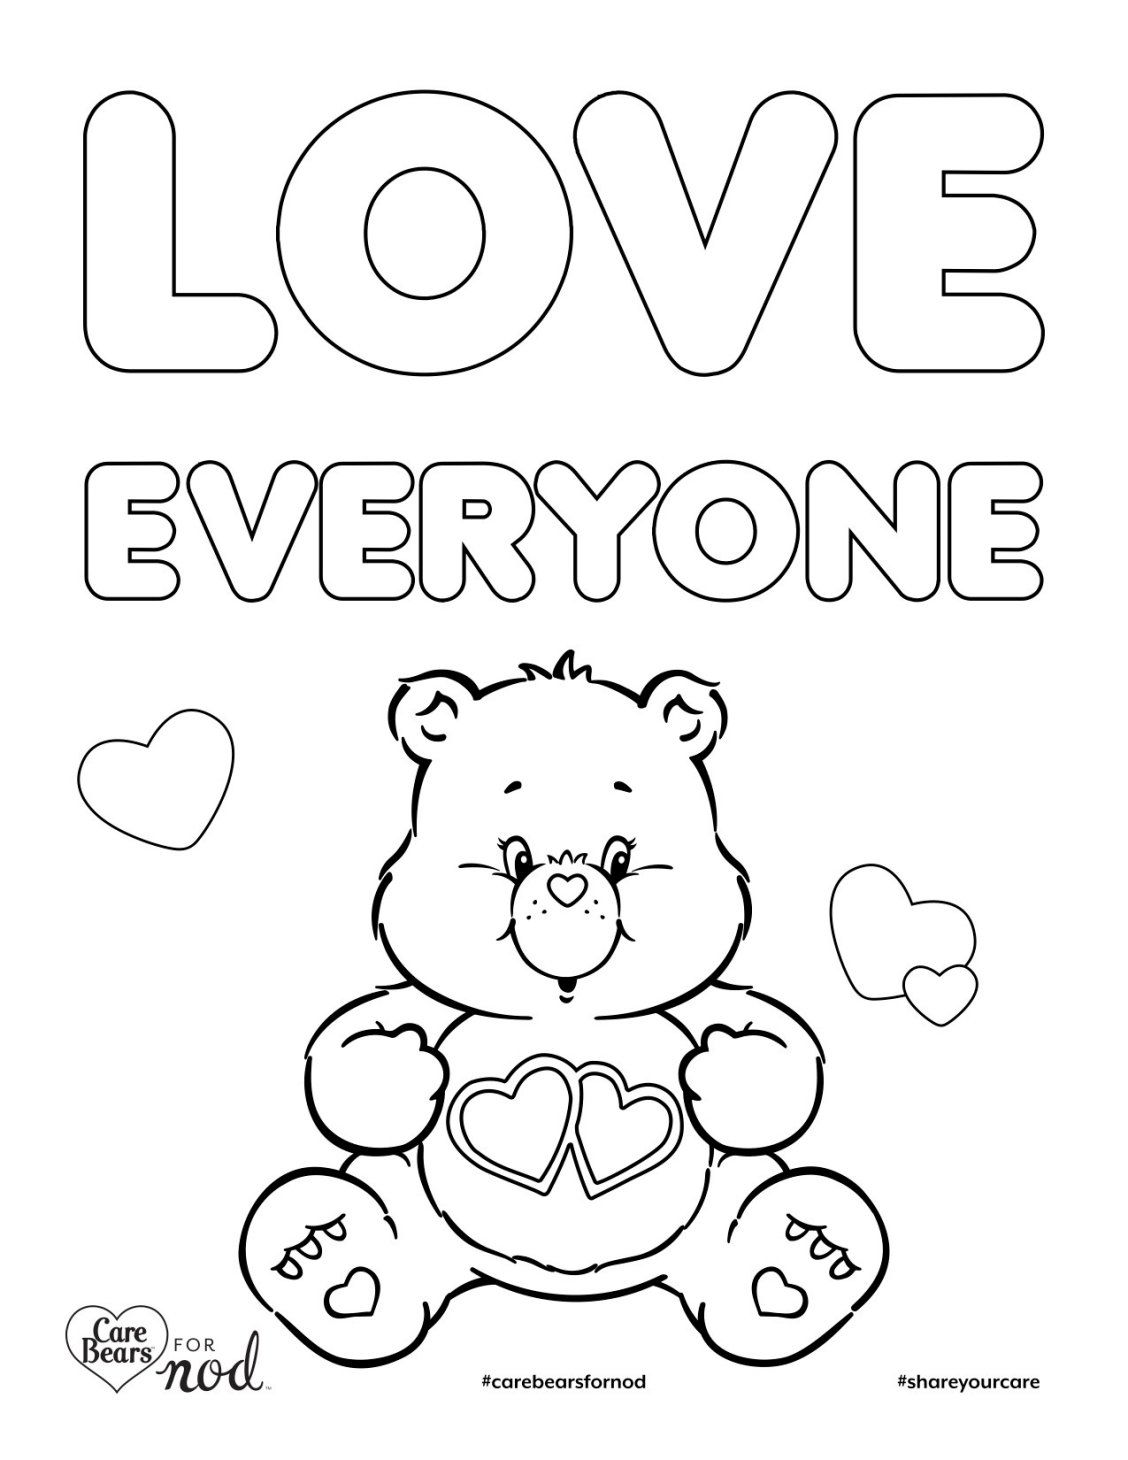 Share Your Care Day! Printable Care Bears Coloring Pages